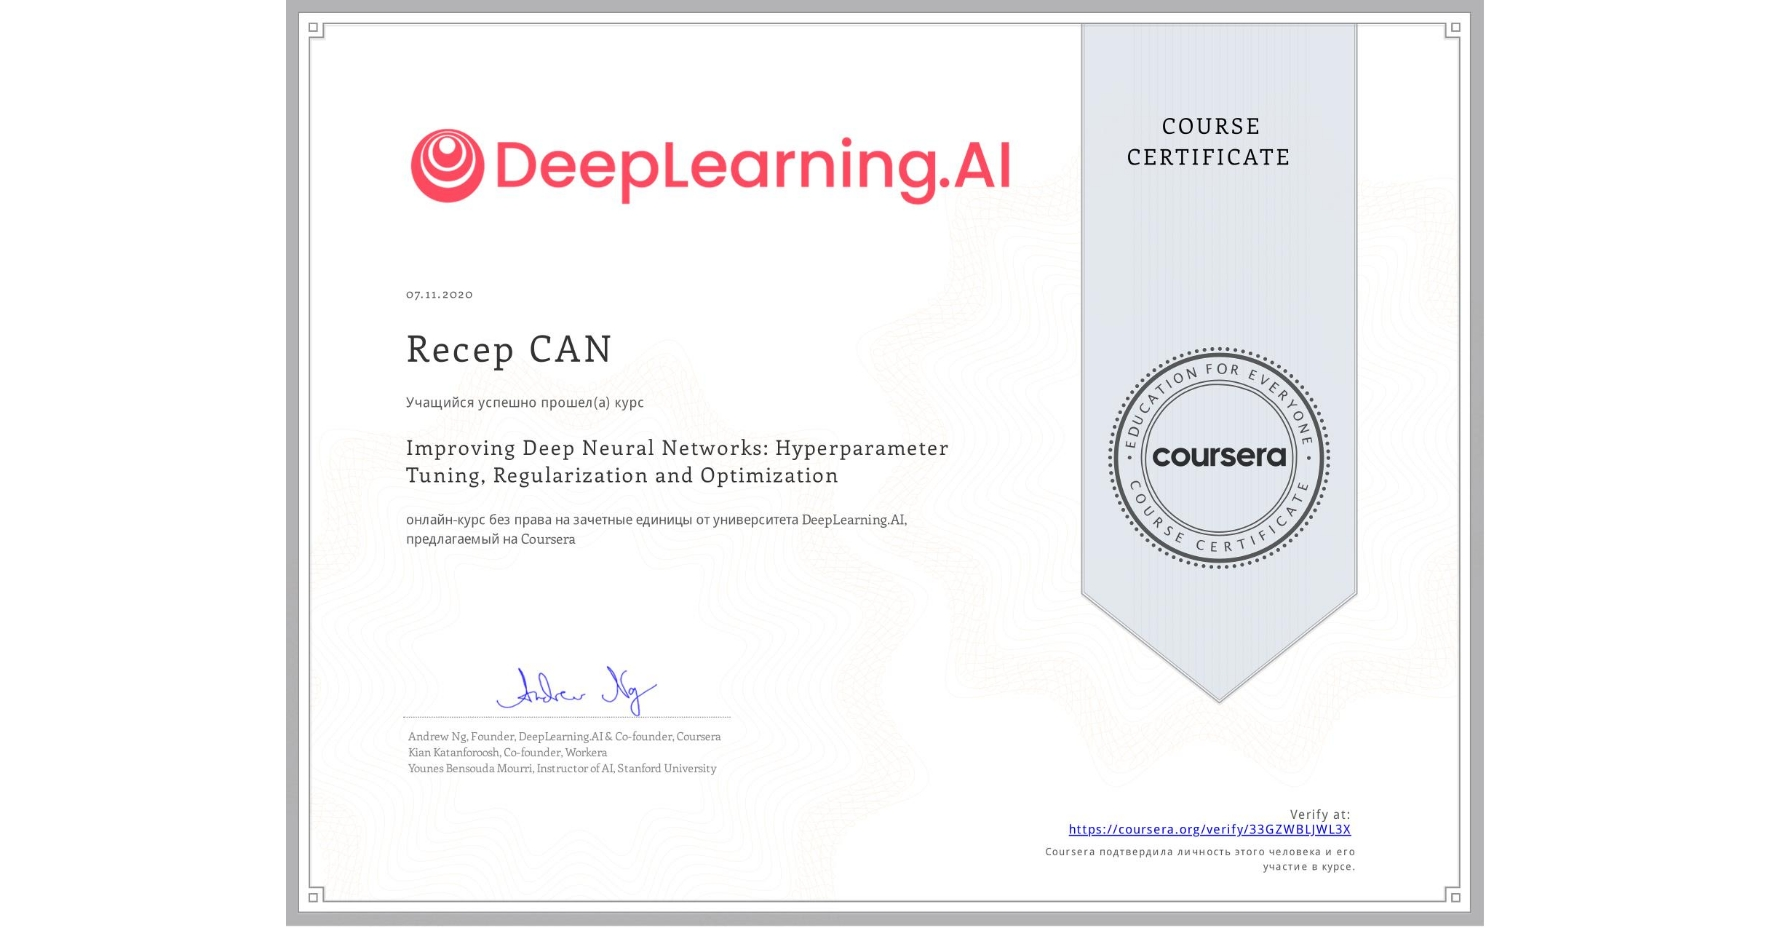 View certificate for Recep CAN, Improving Deep Neural Networks: Hyperparameter Tuning, Regularization and Optimization, an online non-credit course authorized by DeepLearning.AI and offered through Coursera